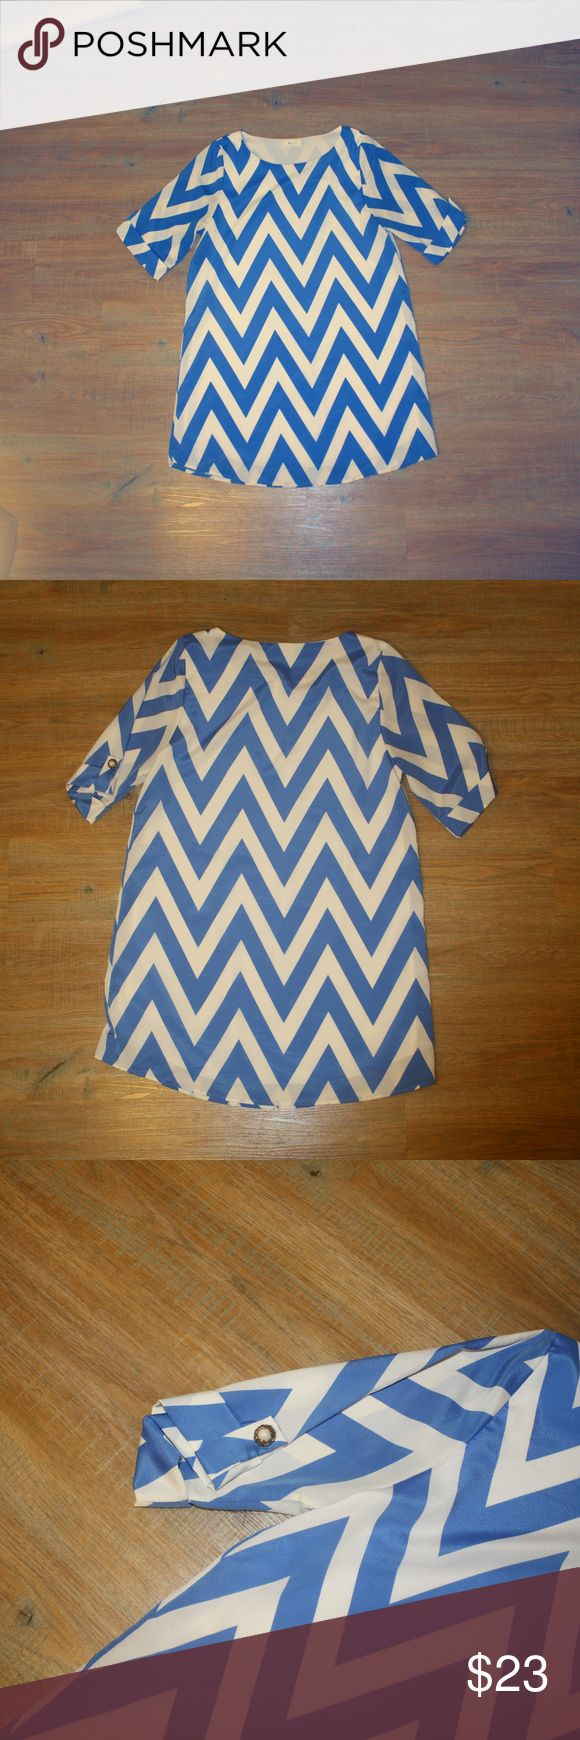 Everly Blue Chevron Print Dress This dress has a beautiful blue chevron print and button detail on the sleeve. Perfect for casual occasion with flats or dressed up with heels! Very comfortable and perfect for summer weather. Everly Dresses Midi